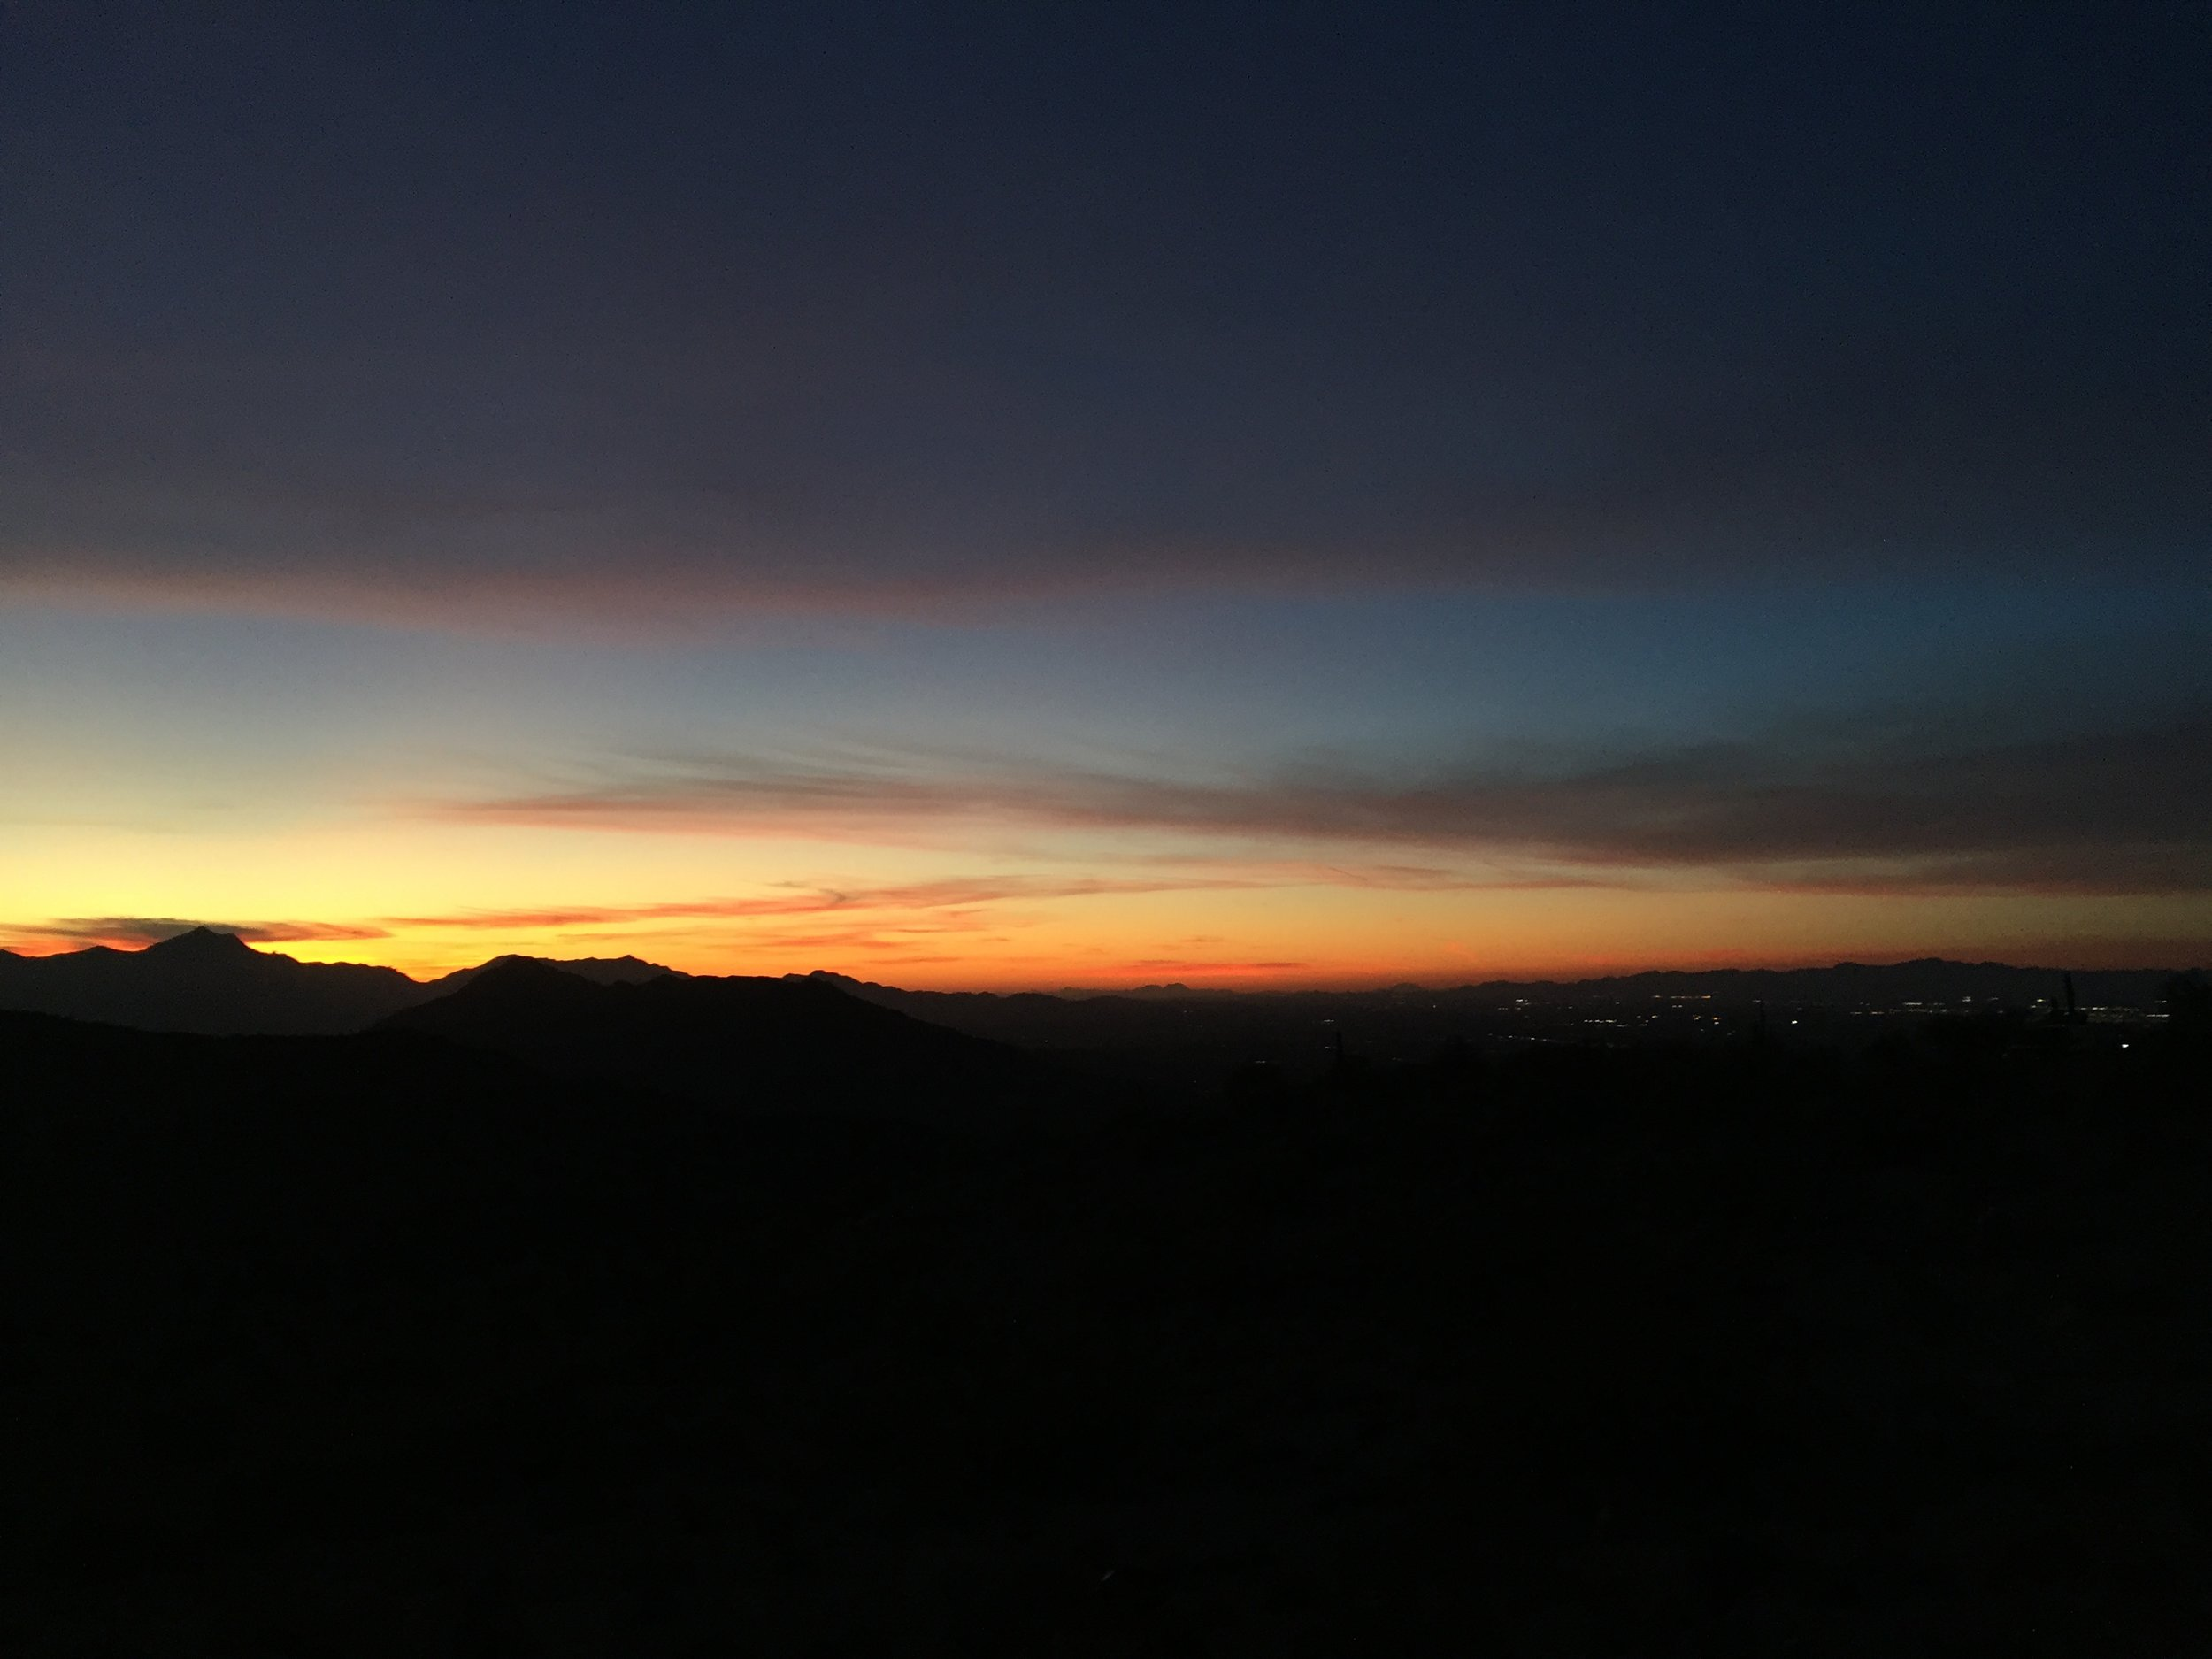 South Mountain Sunset: The End